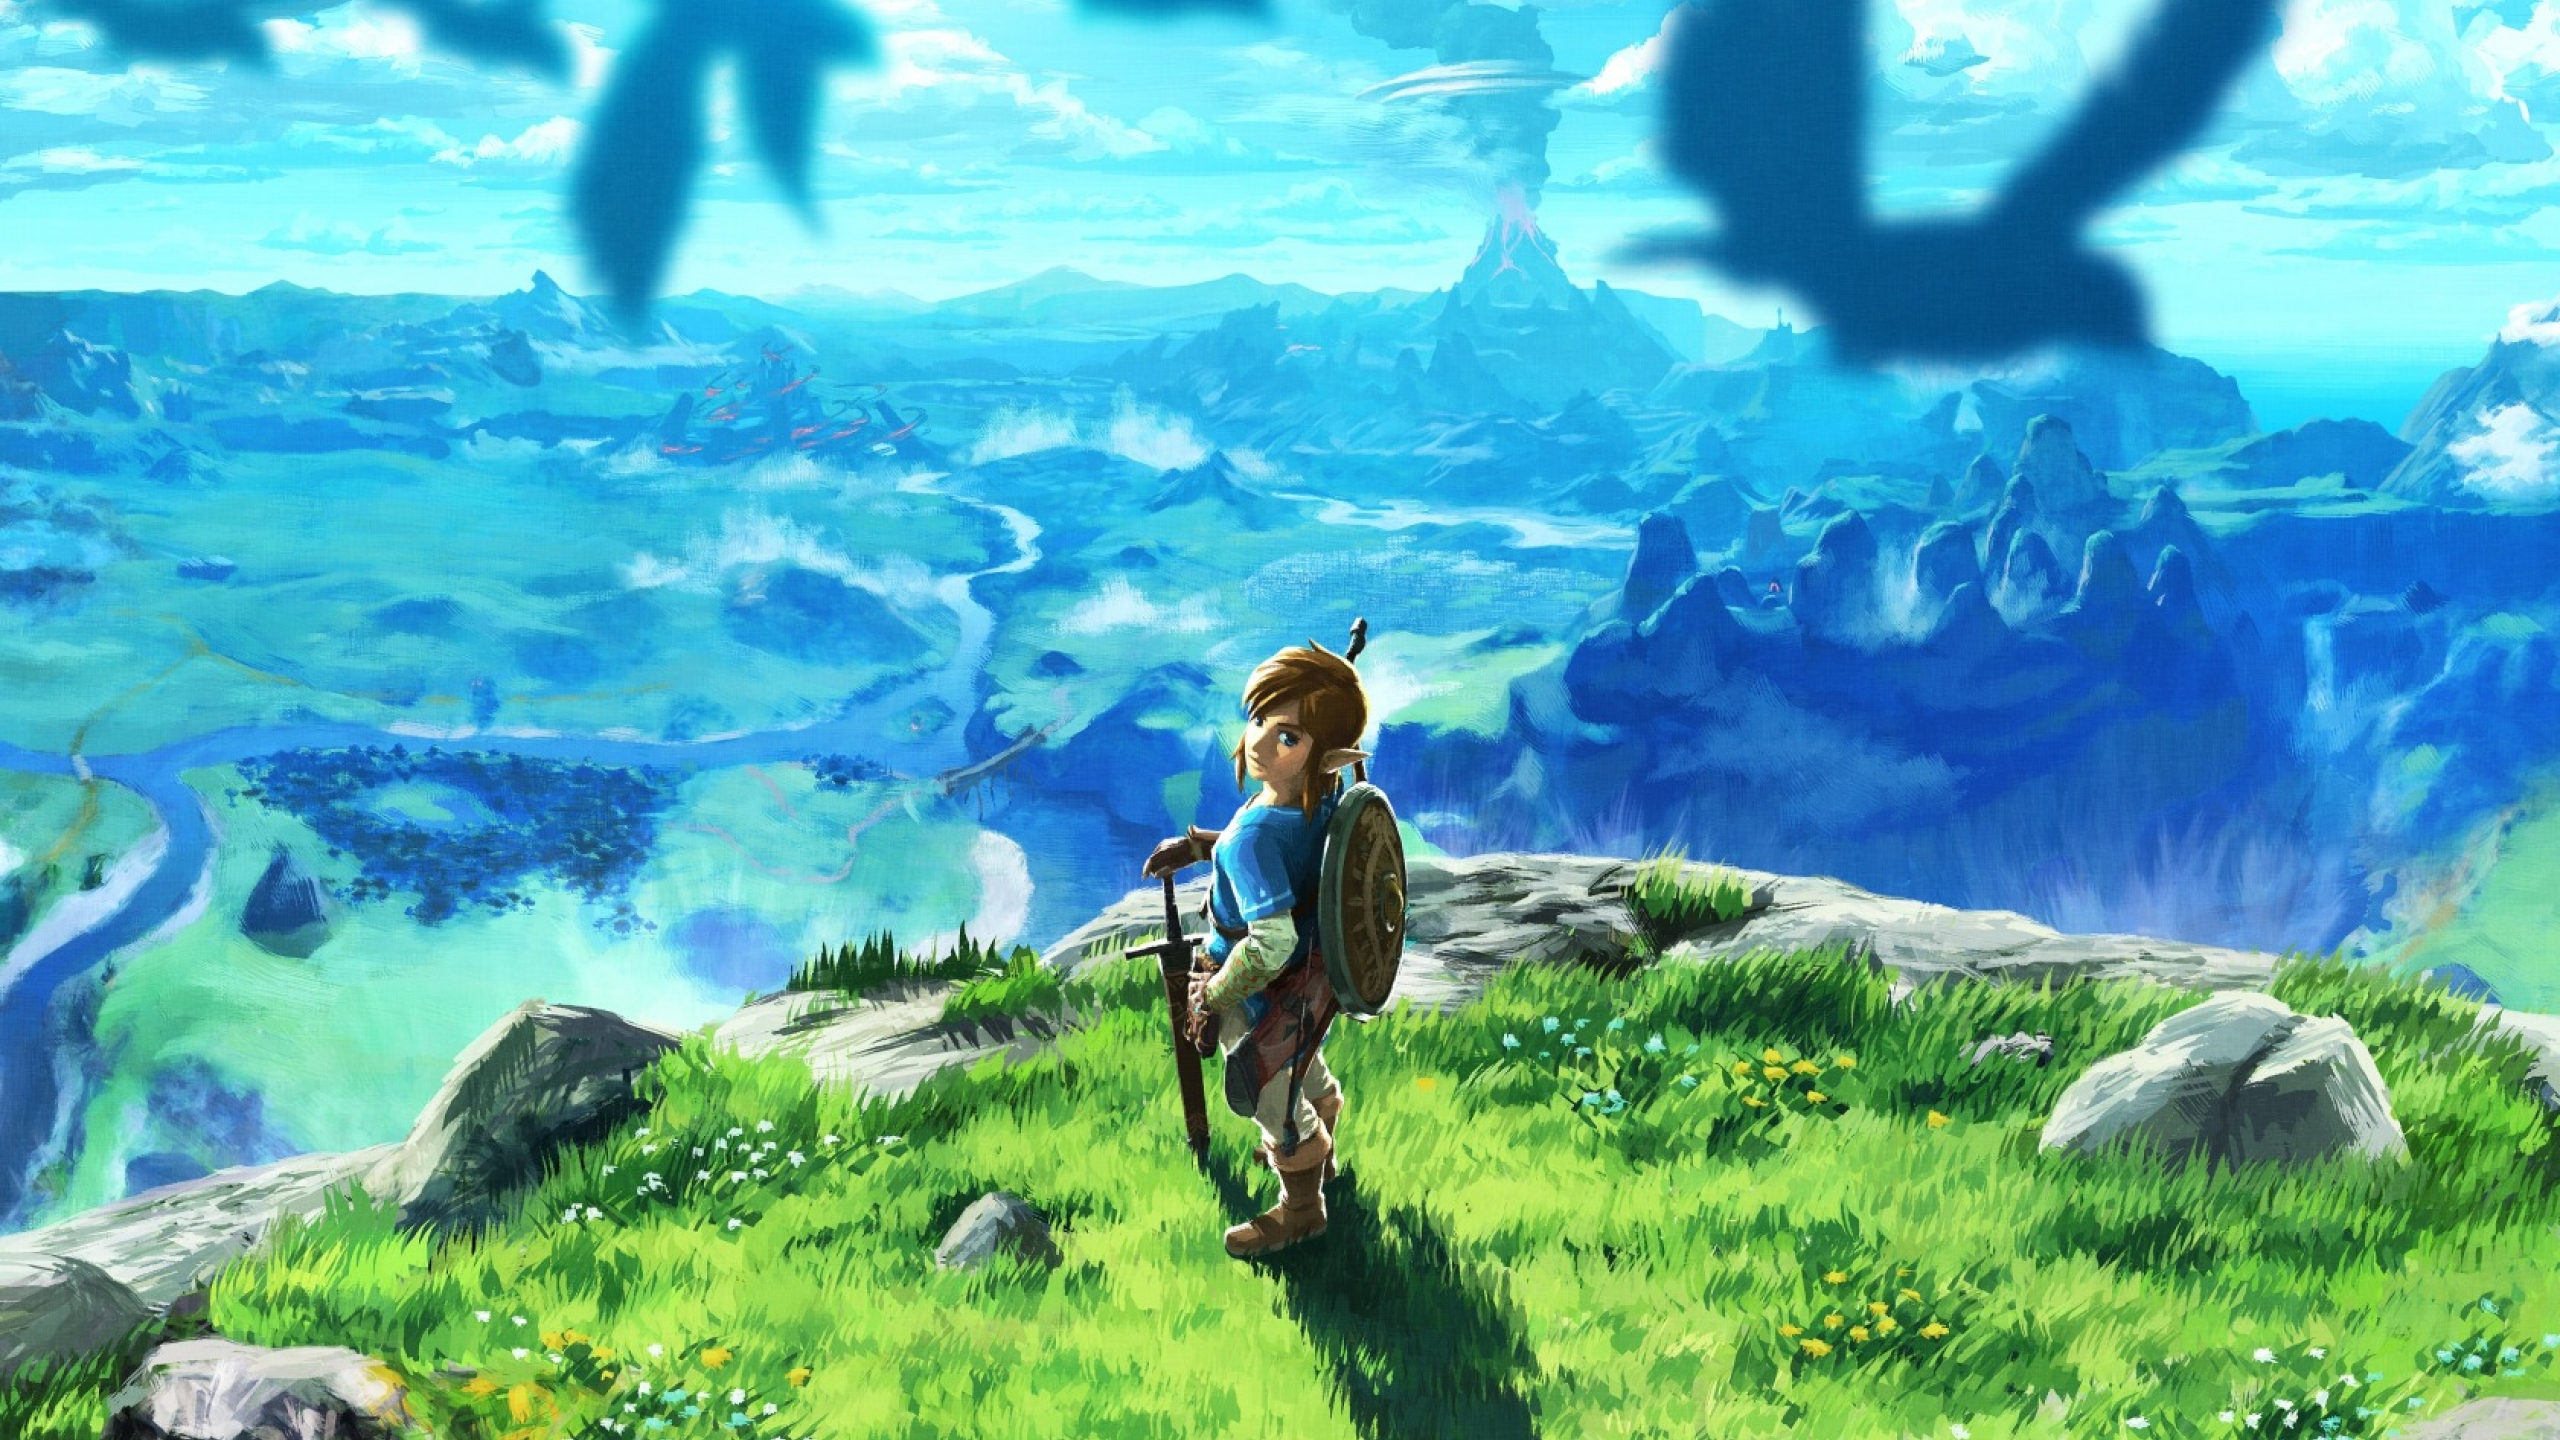 2560x1440 Legend Of Zelda Breath Of The Wild Art 1440p